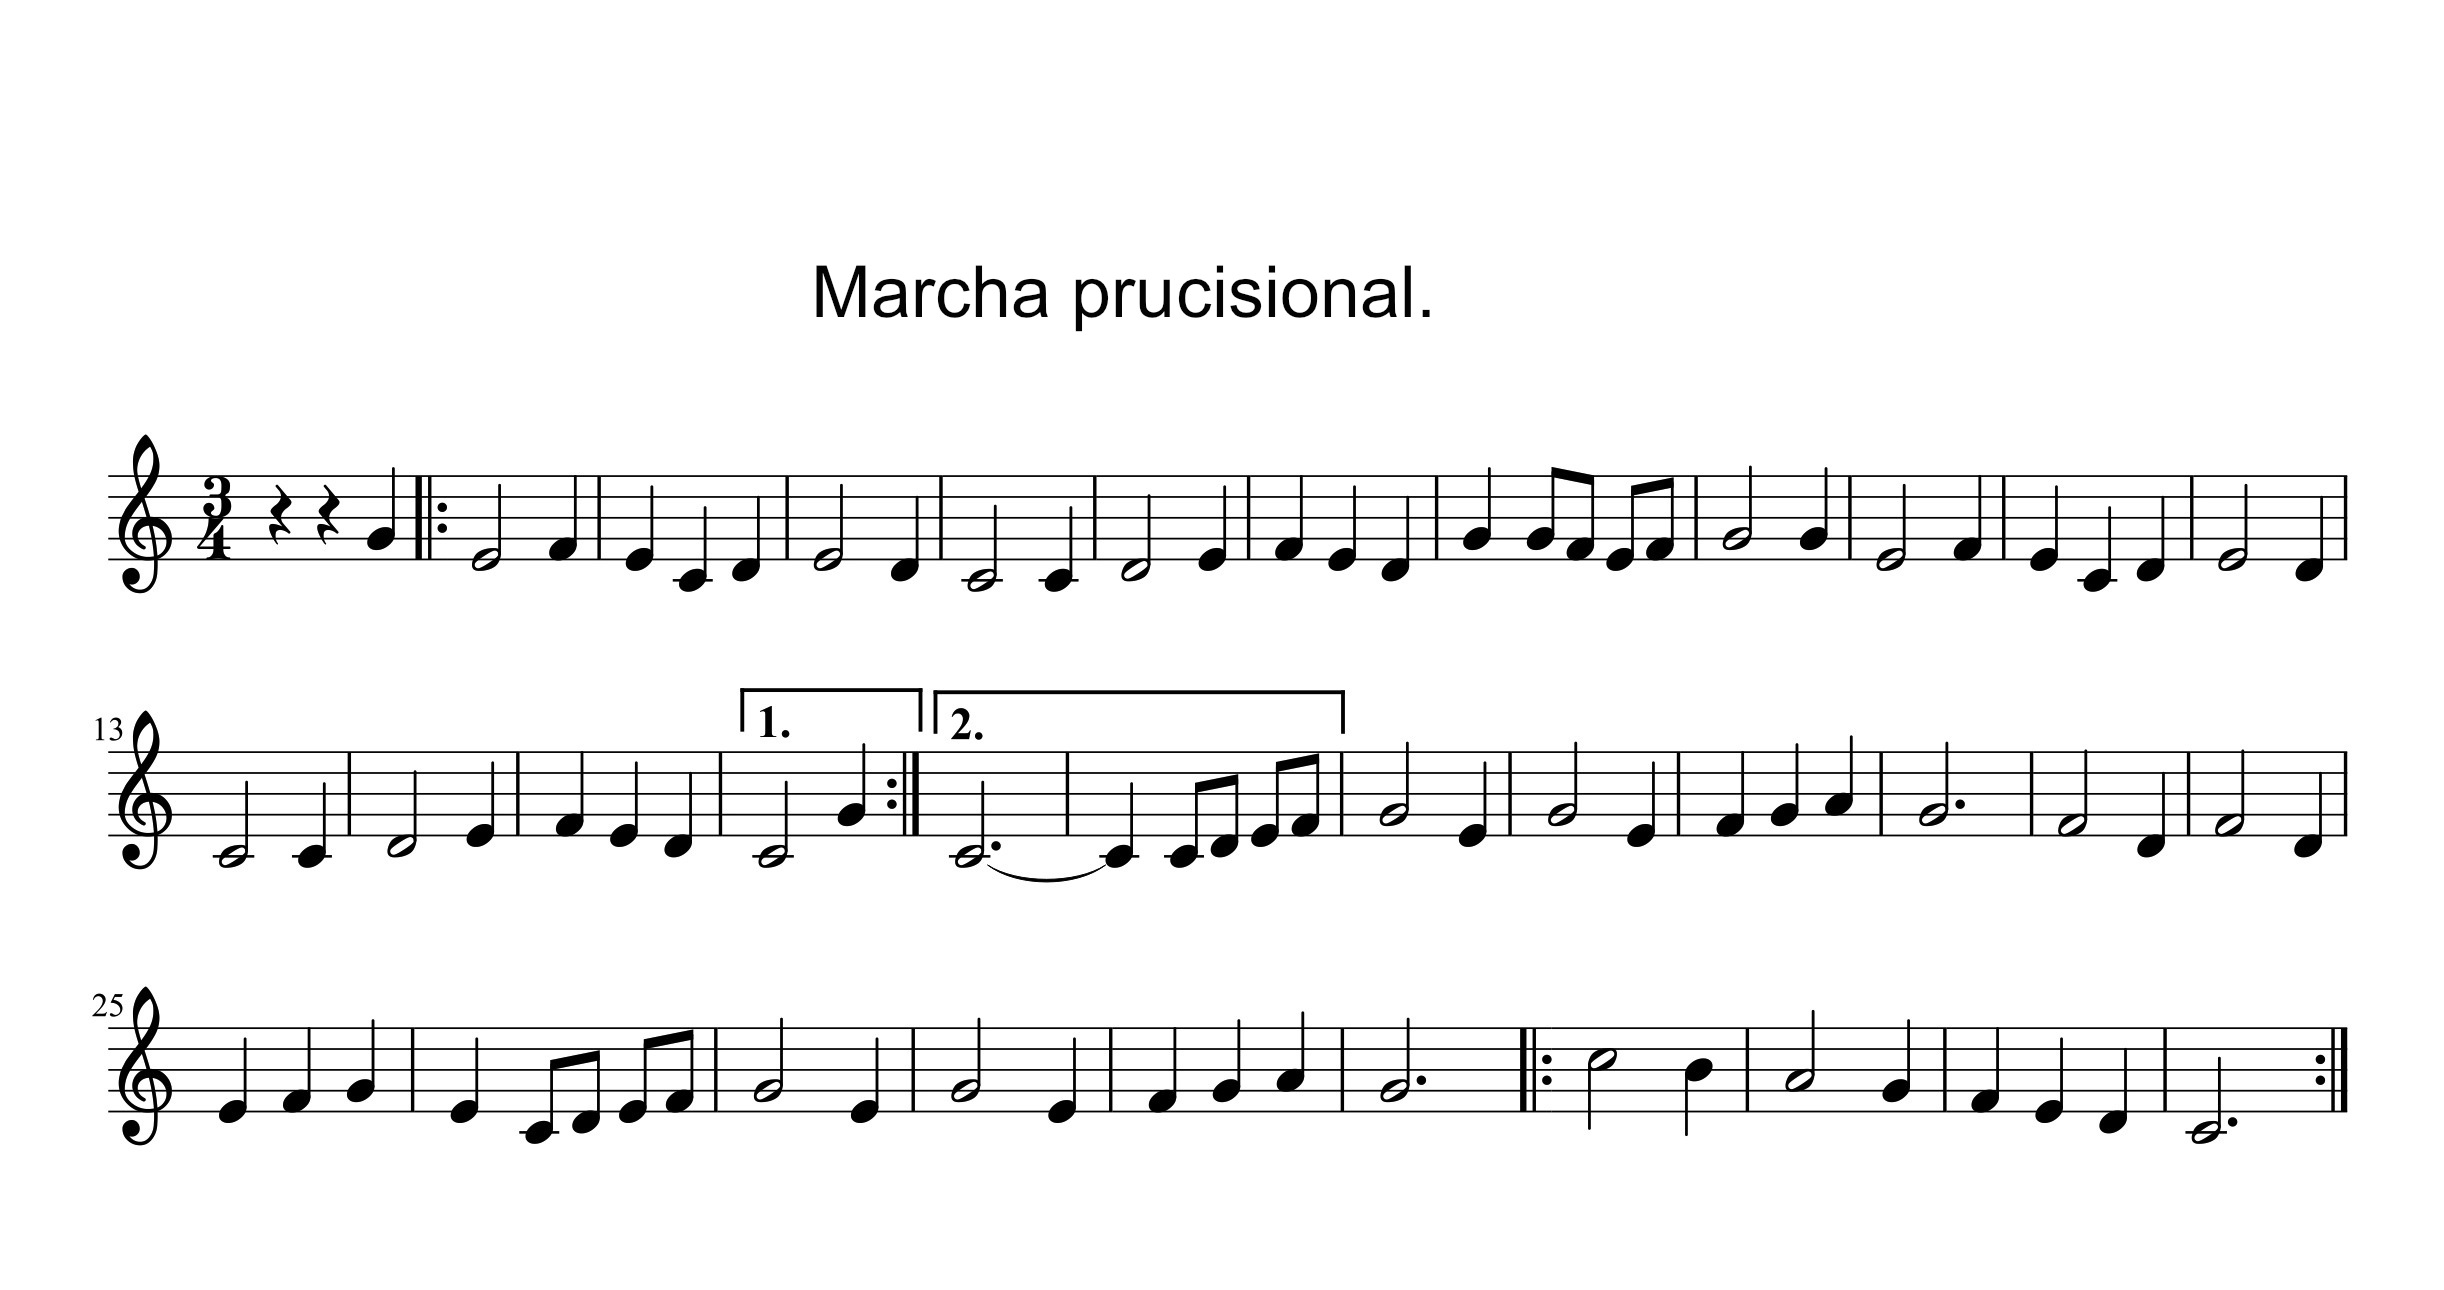 Marcha prucisional